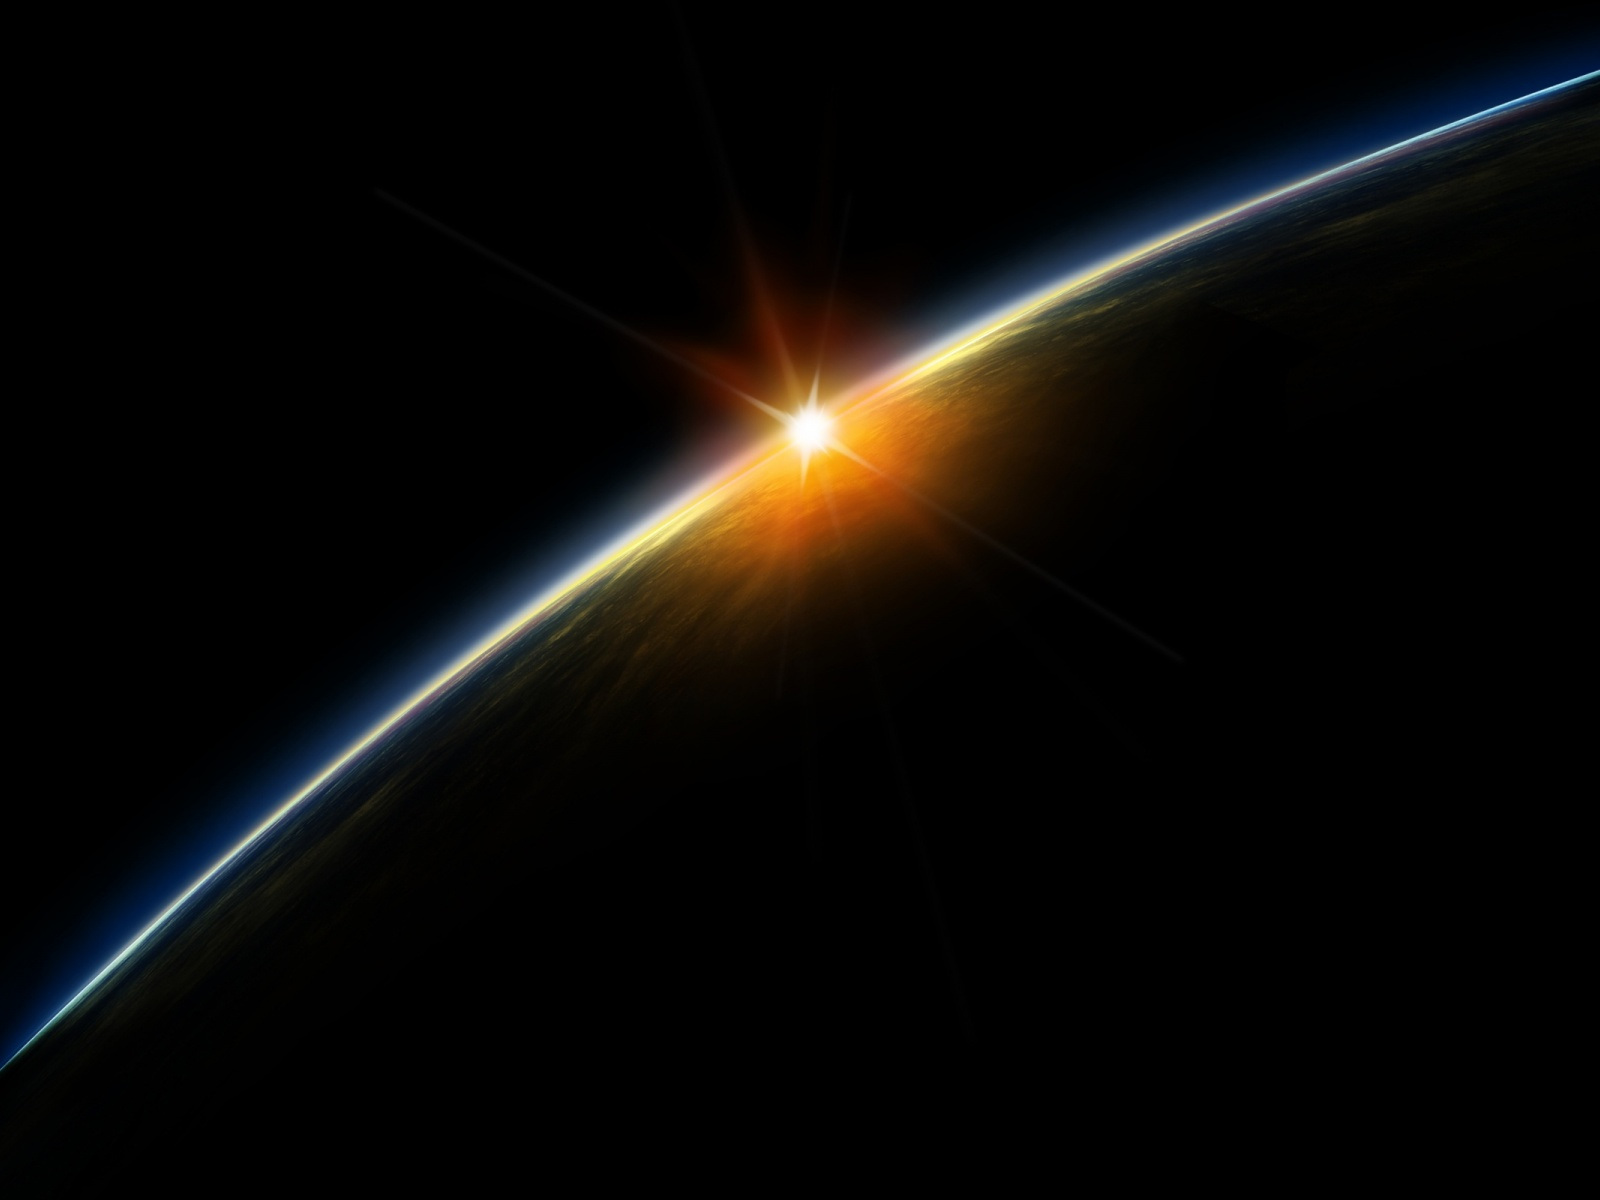 1600x1200 Sunrise from space desktop PC and Mac wallpaper